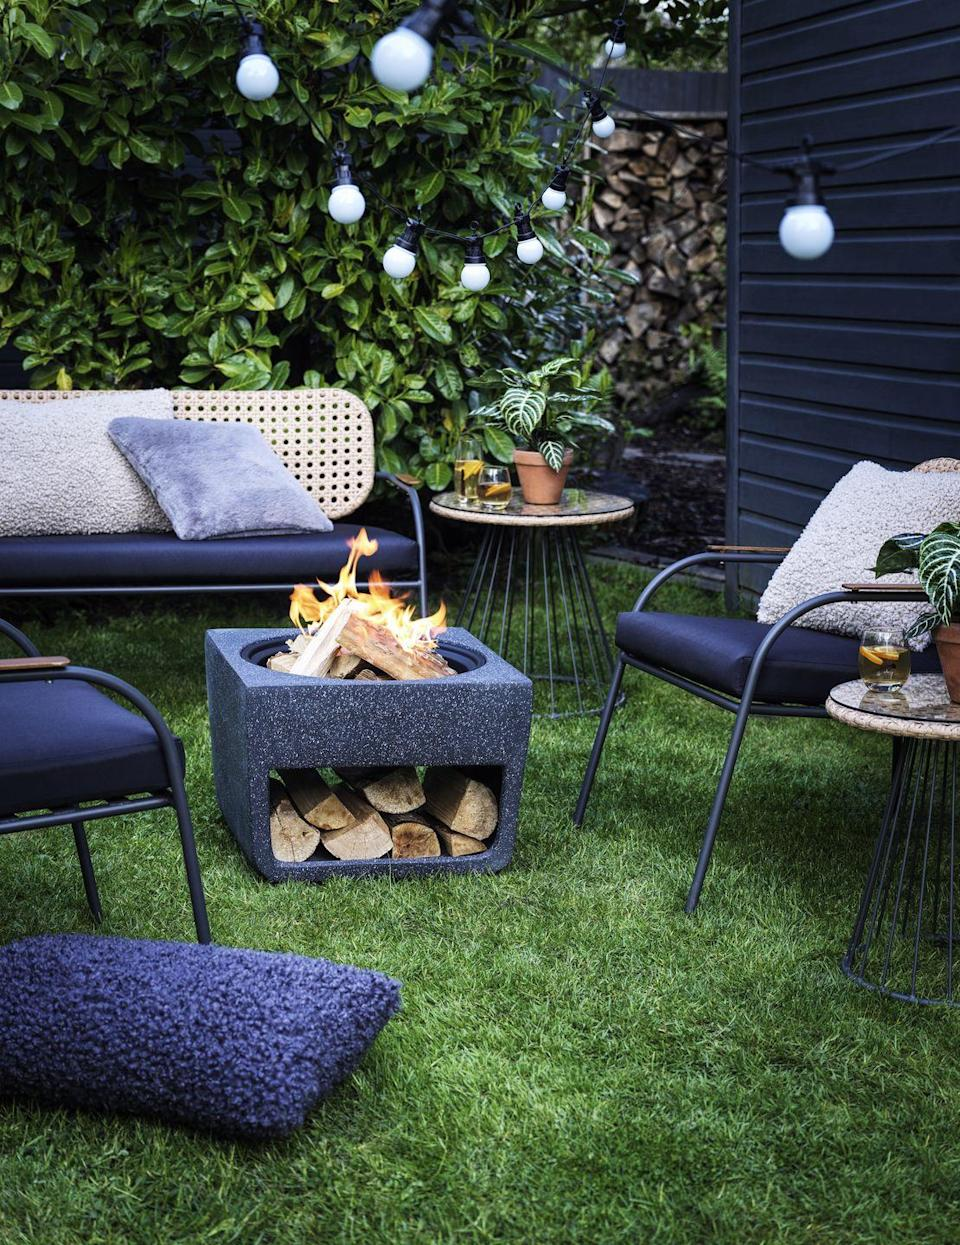 """<p>Grab a cosy blanket and curl up in front of the <a href=""""https://www.housebeautiful.com/uk/garden/g32185721/fire-pit/"""" rel=""""nofollow noopener"""" target=""""_blank"""" data-ylk=""""slk:fire"""" class=""""link rapid-noclick-resp"""">fire</a> this autumn/winter. A staple for summer, expect to see them continue well into the cooler months. </p>"""